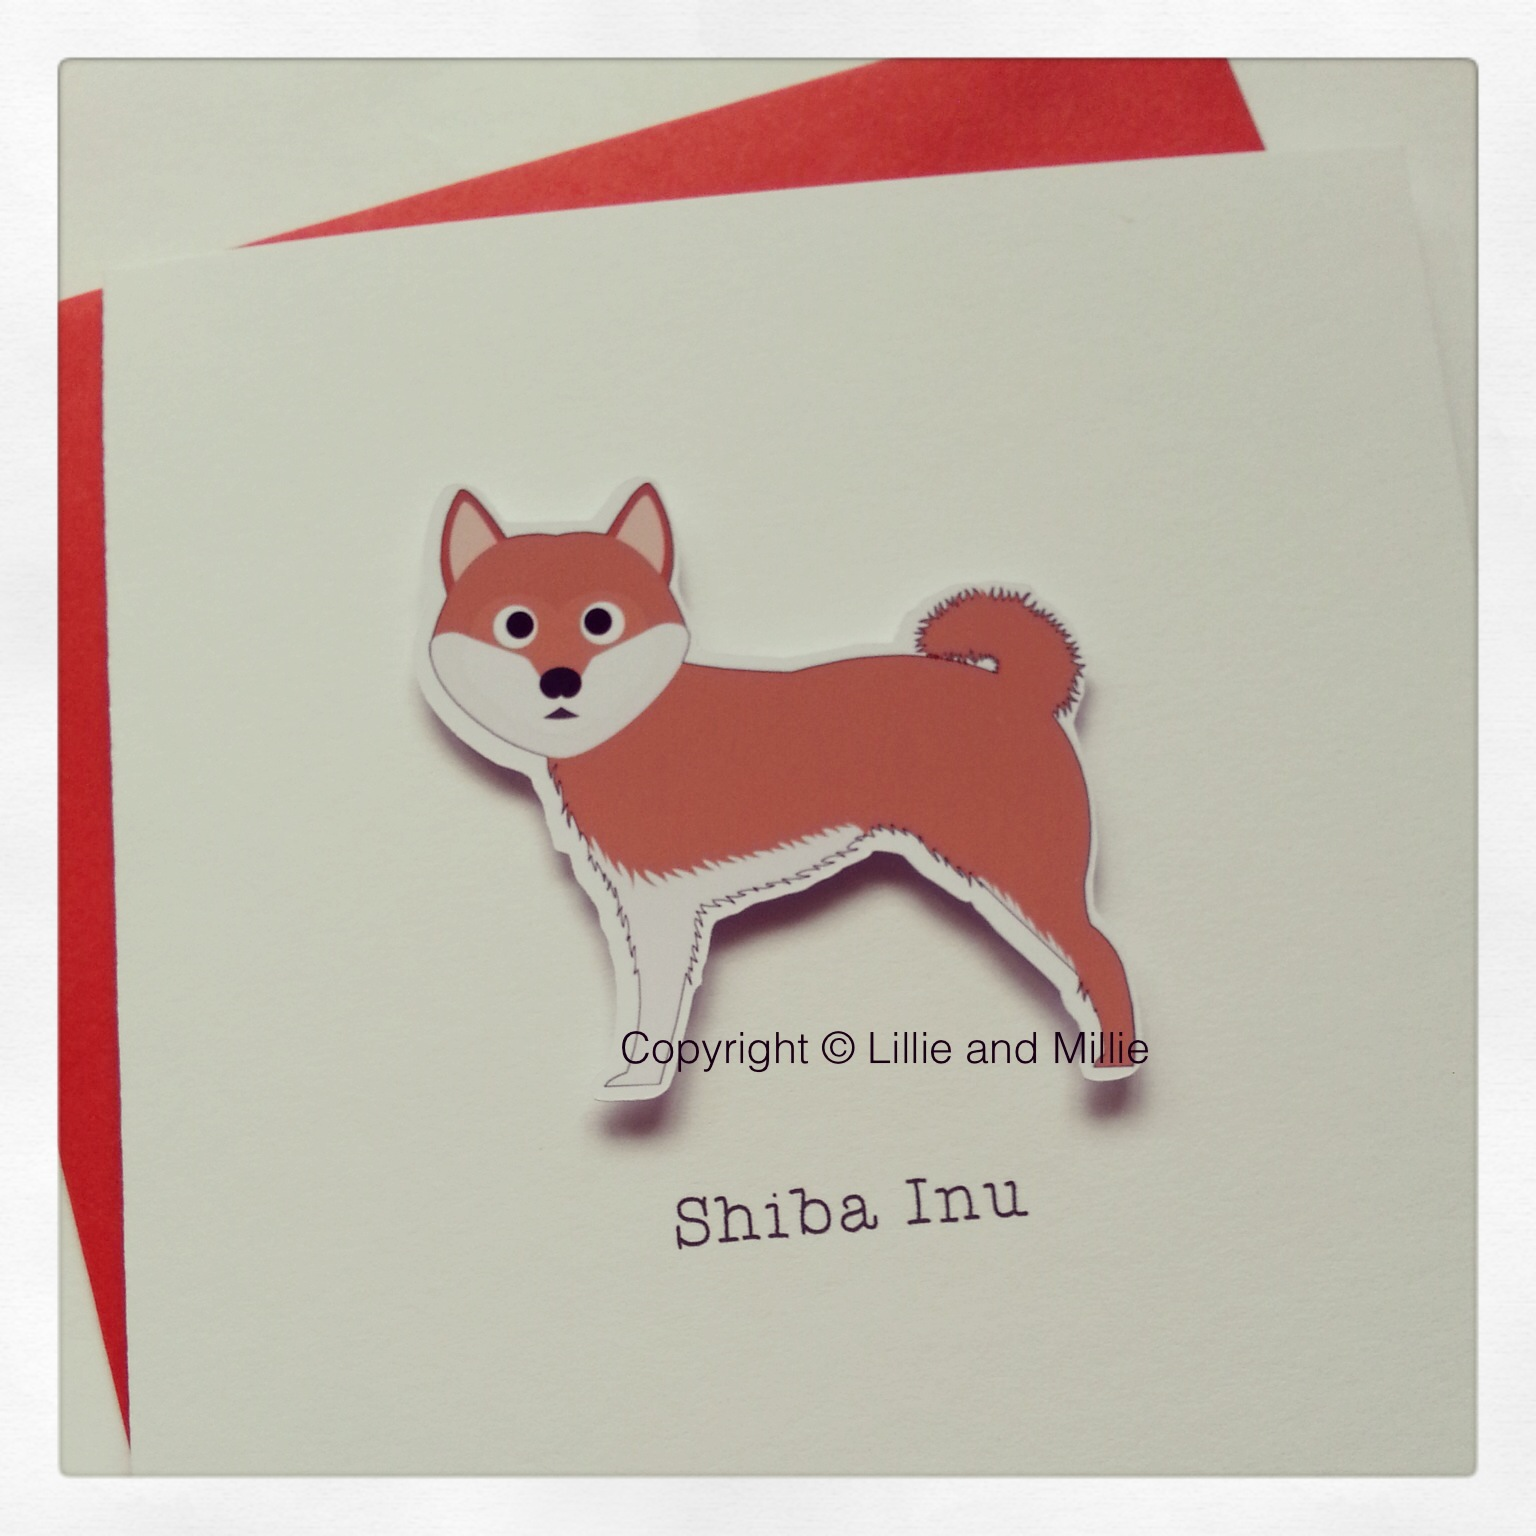 Cute and Cuddly Shiba Inu Greetings Card